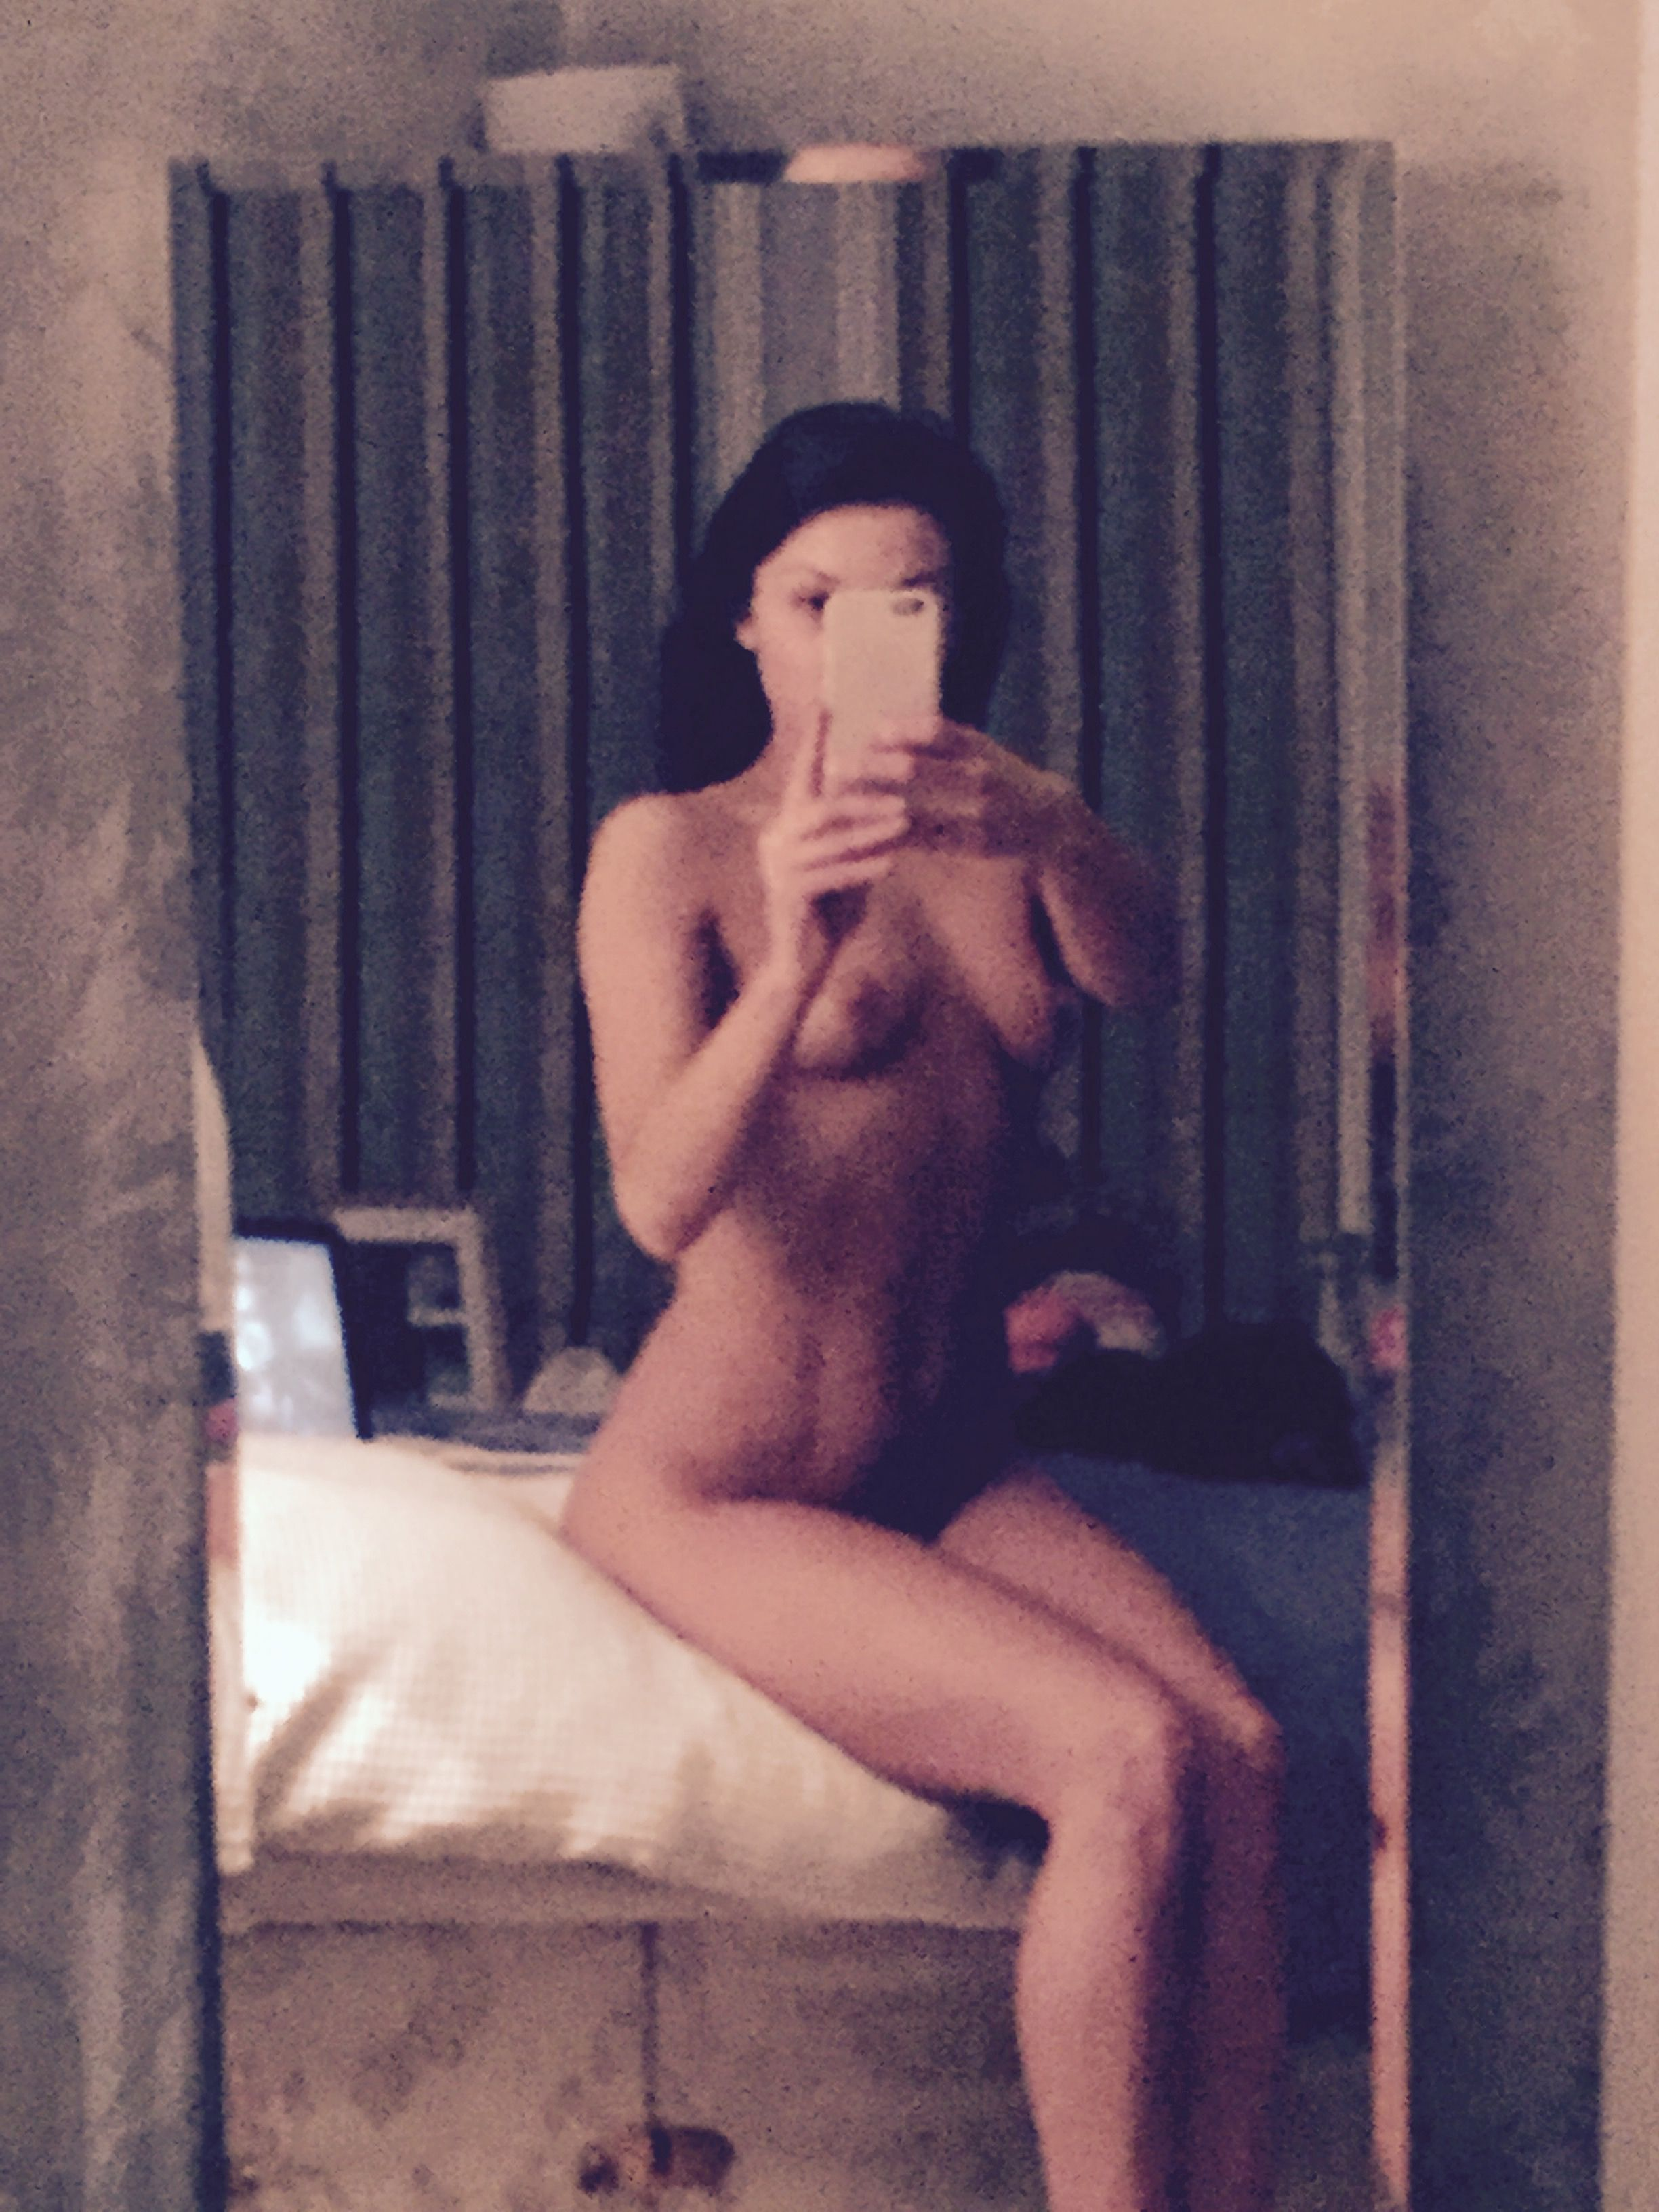 Faye-Brookes-Leaked-1-thefappening_nu_558548.jpg